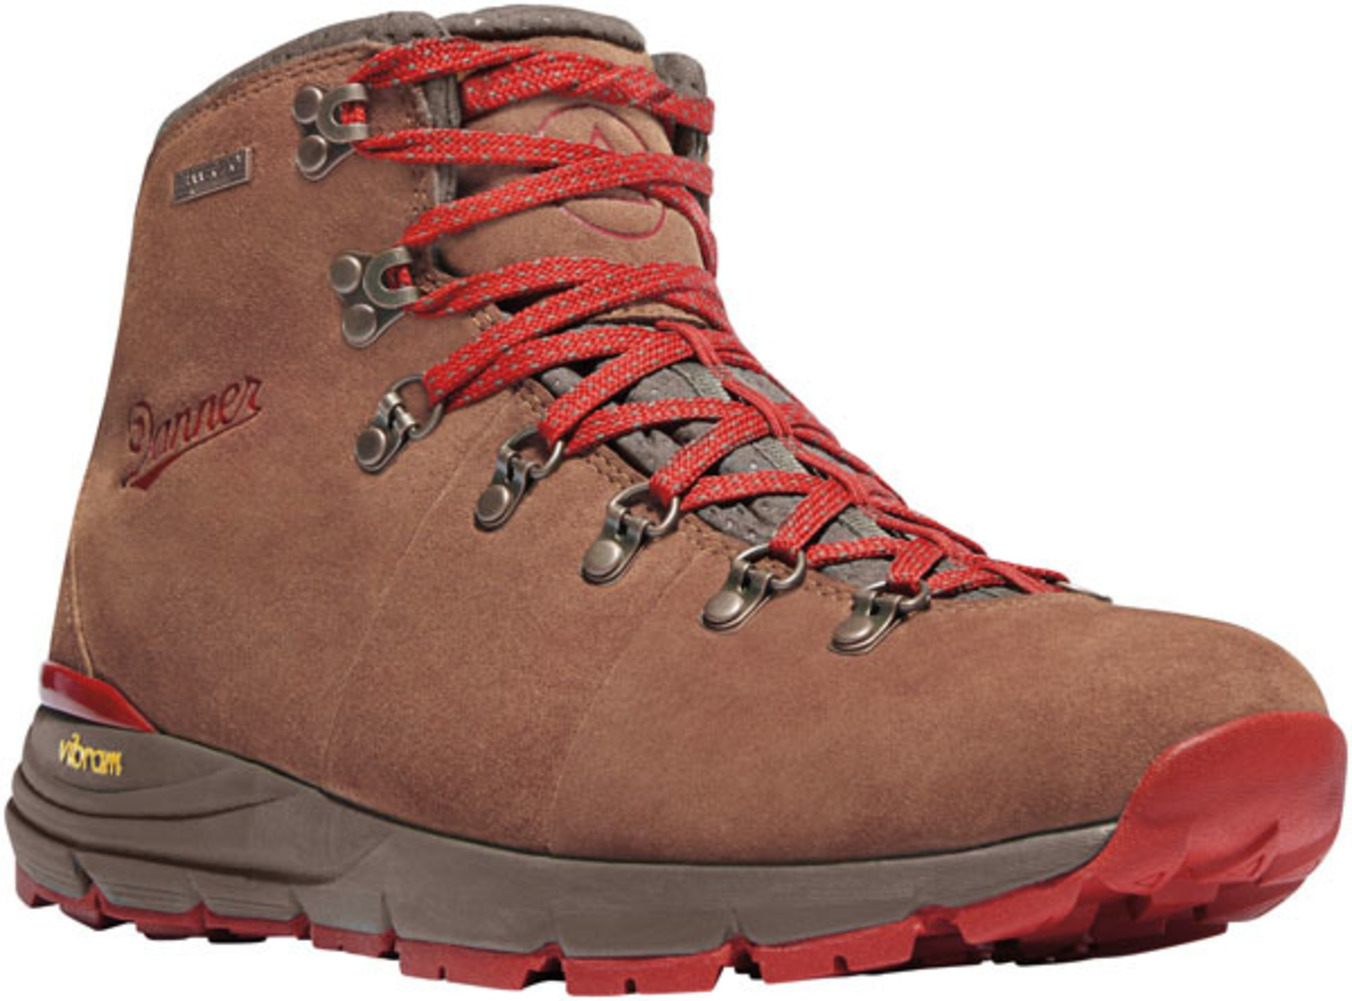 Danner Mountain 600 4.5-Inch Outdoor Brown/Red 62241